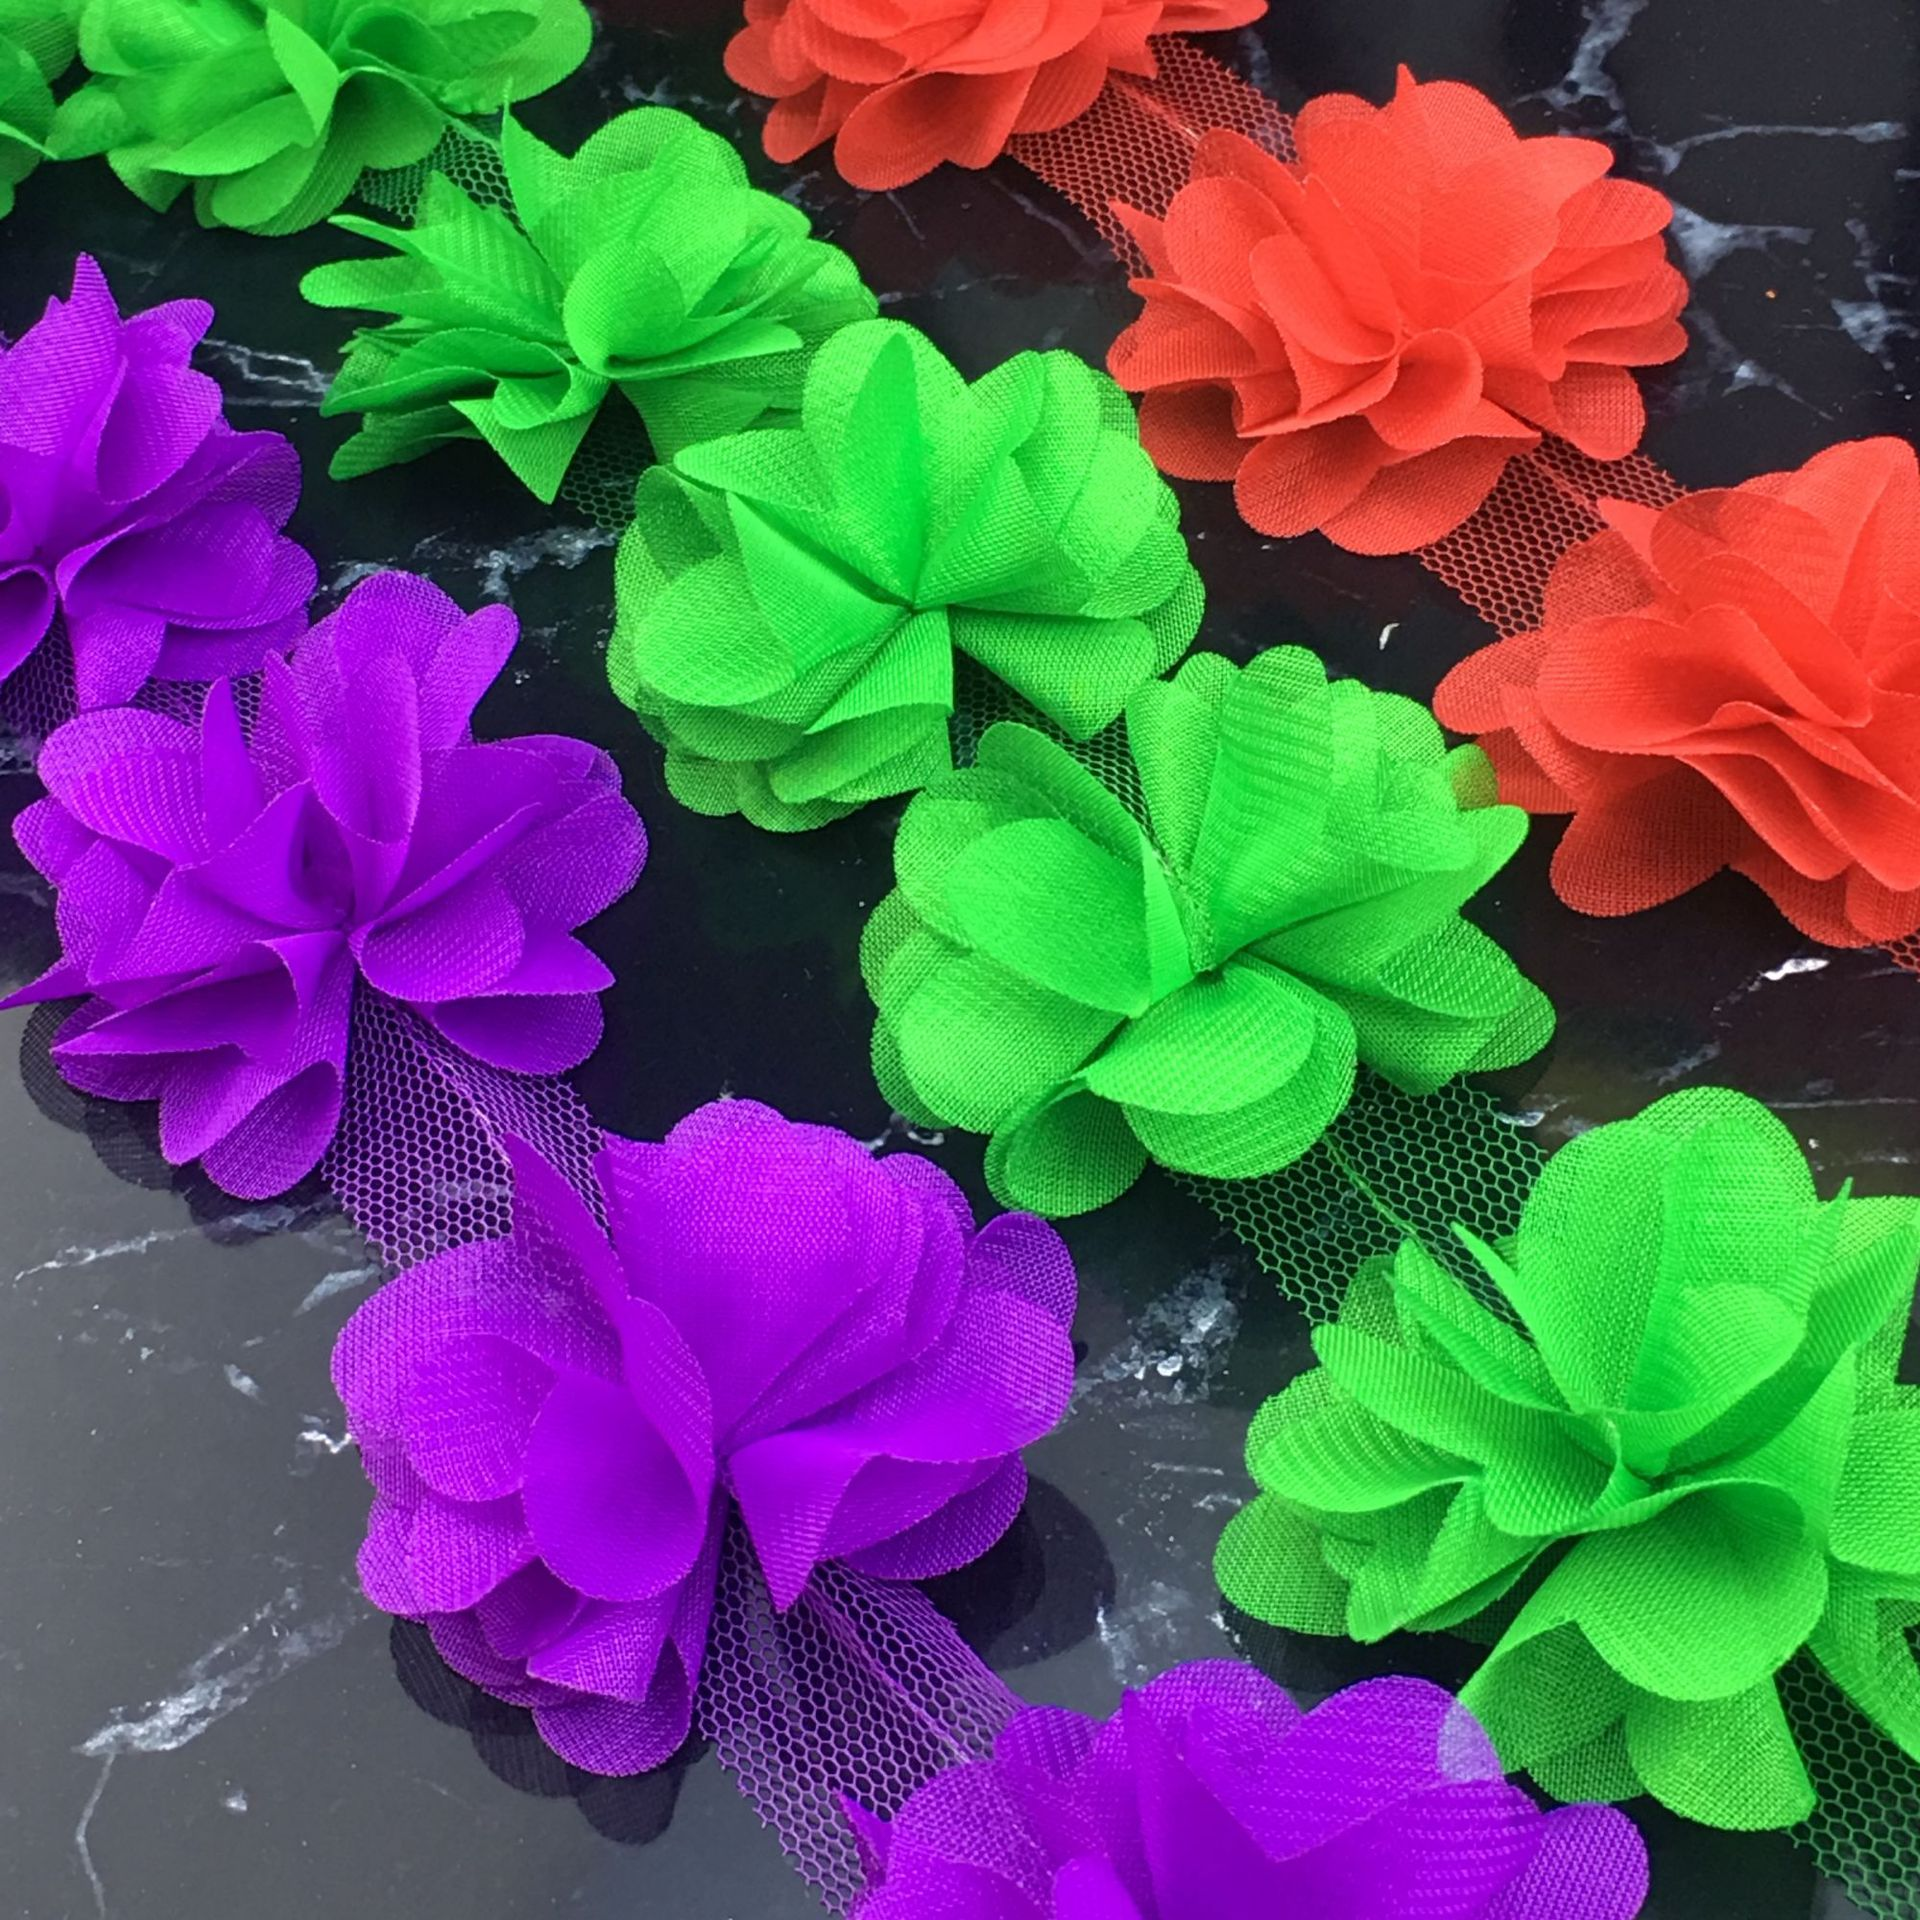 NISHINE Wholesale 120yards/lot 18 Colors Chiffon 3D Lace Flowers For Kids Handmade Headbands Diy Clothing Hair Accessories